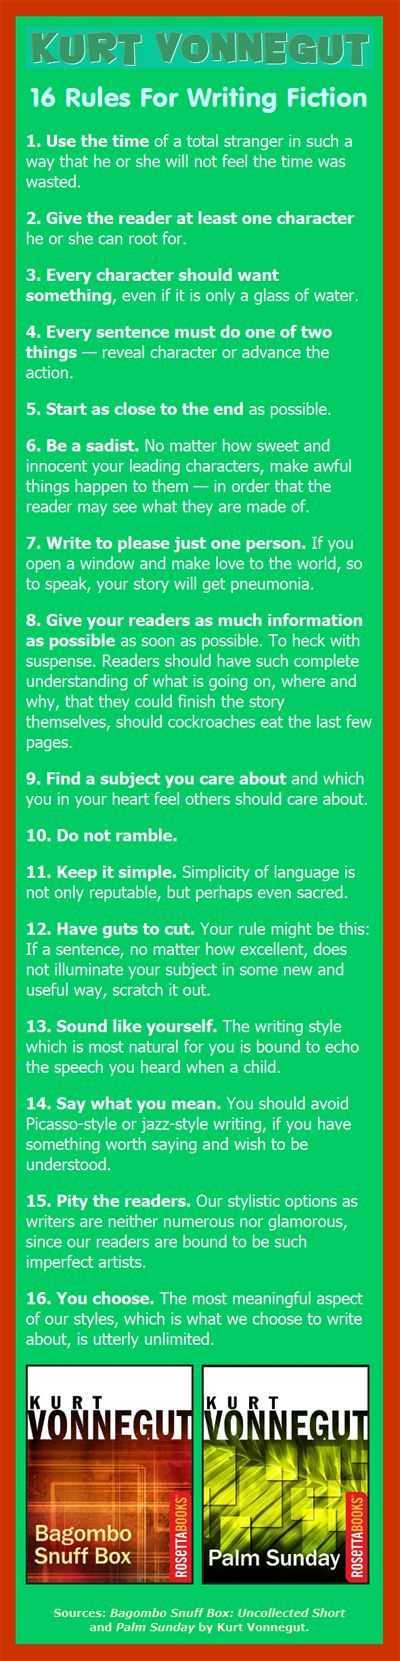 1. Use the time of a total stranger in such a way that he or she will not feel the time was wasted. 2. Give the reader at least one character he or she can root for. 3. Every character should want ...